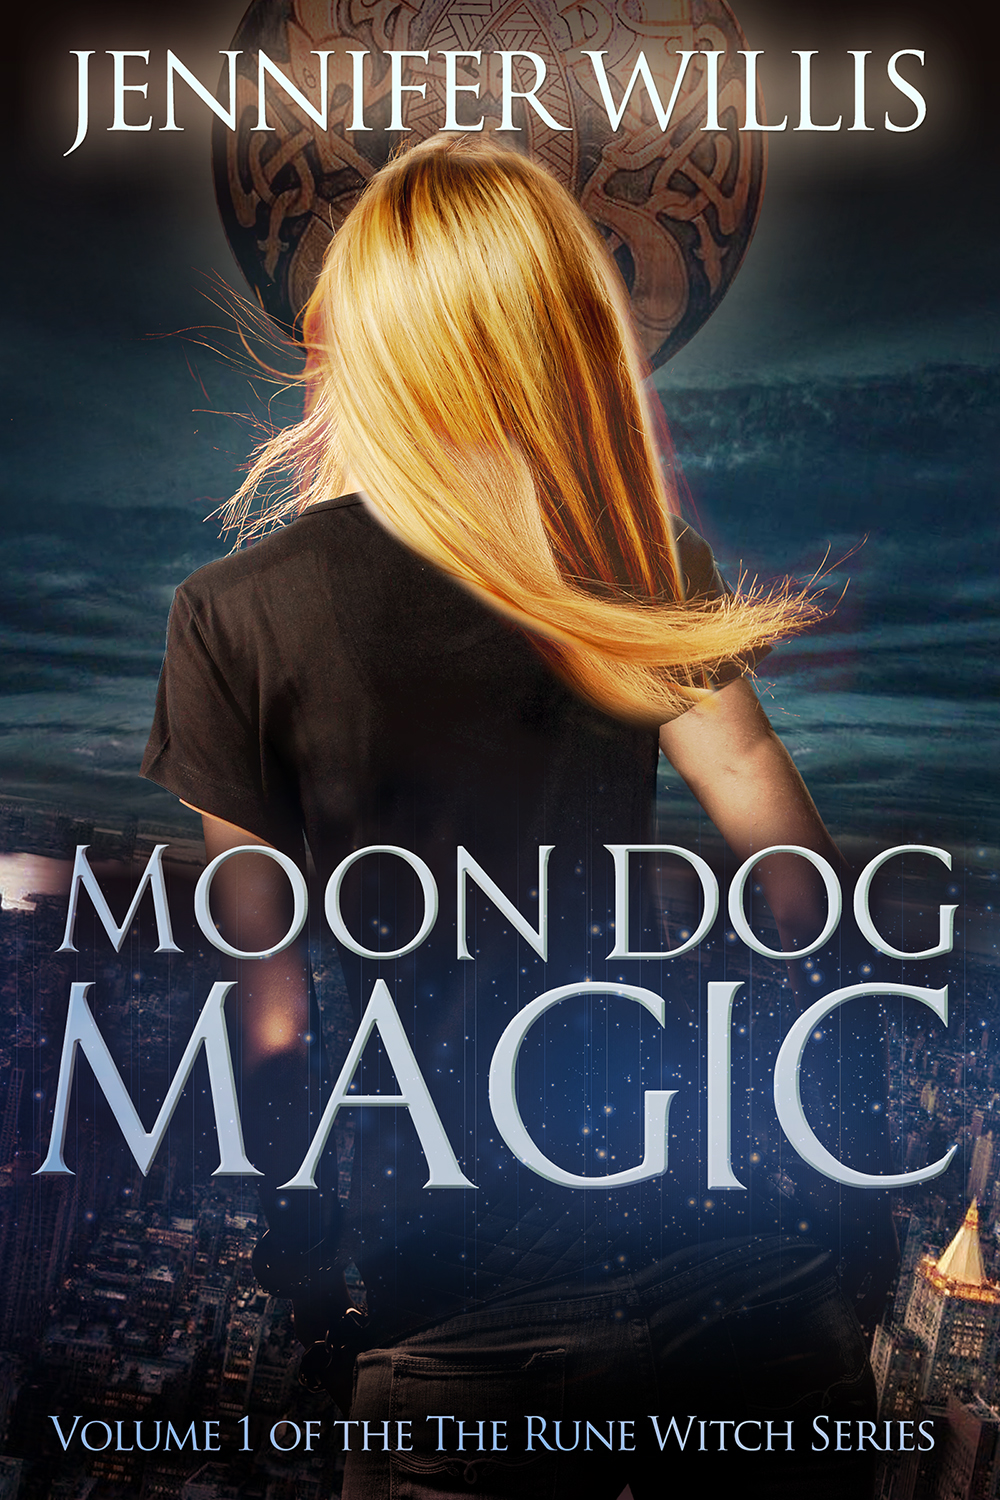 Moon Dog Magic (Rune Witch, Volume 1) by Jennifer Willis